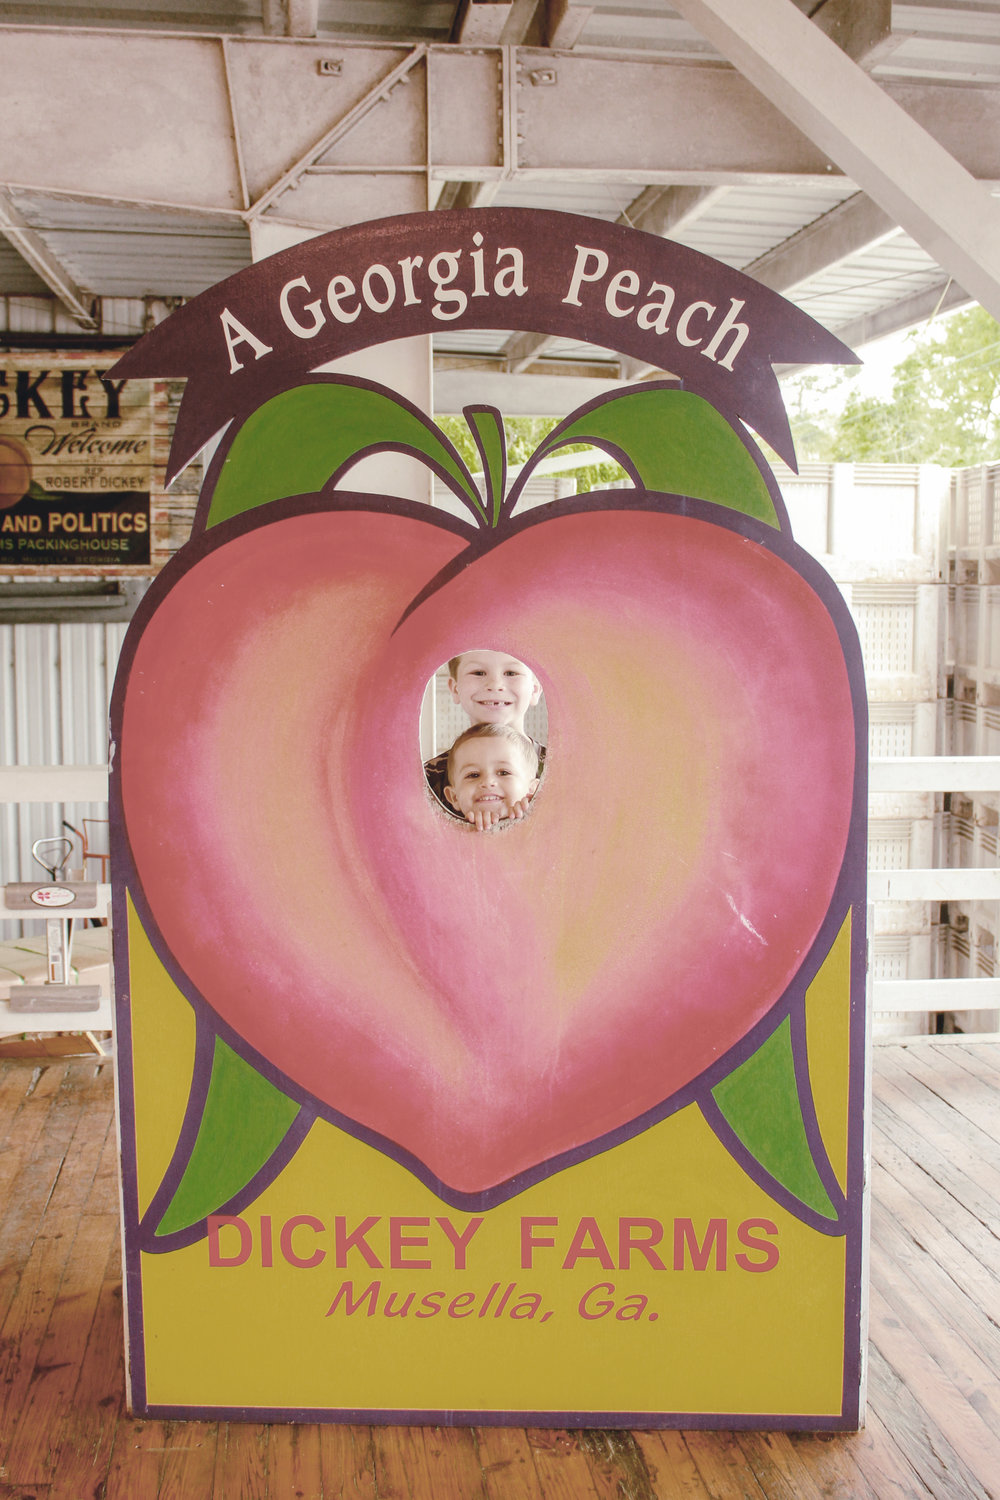 dickey farms peach grower / musella ga / heirloomed travel